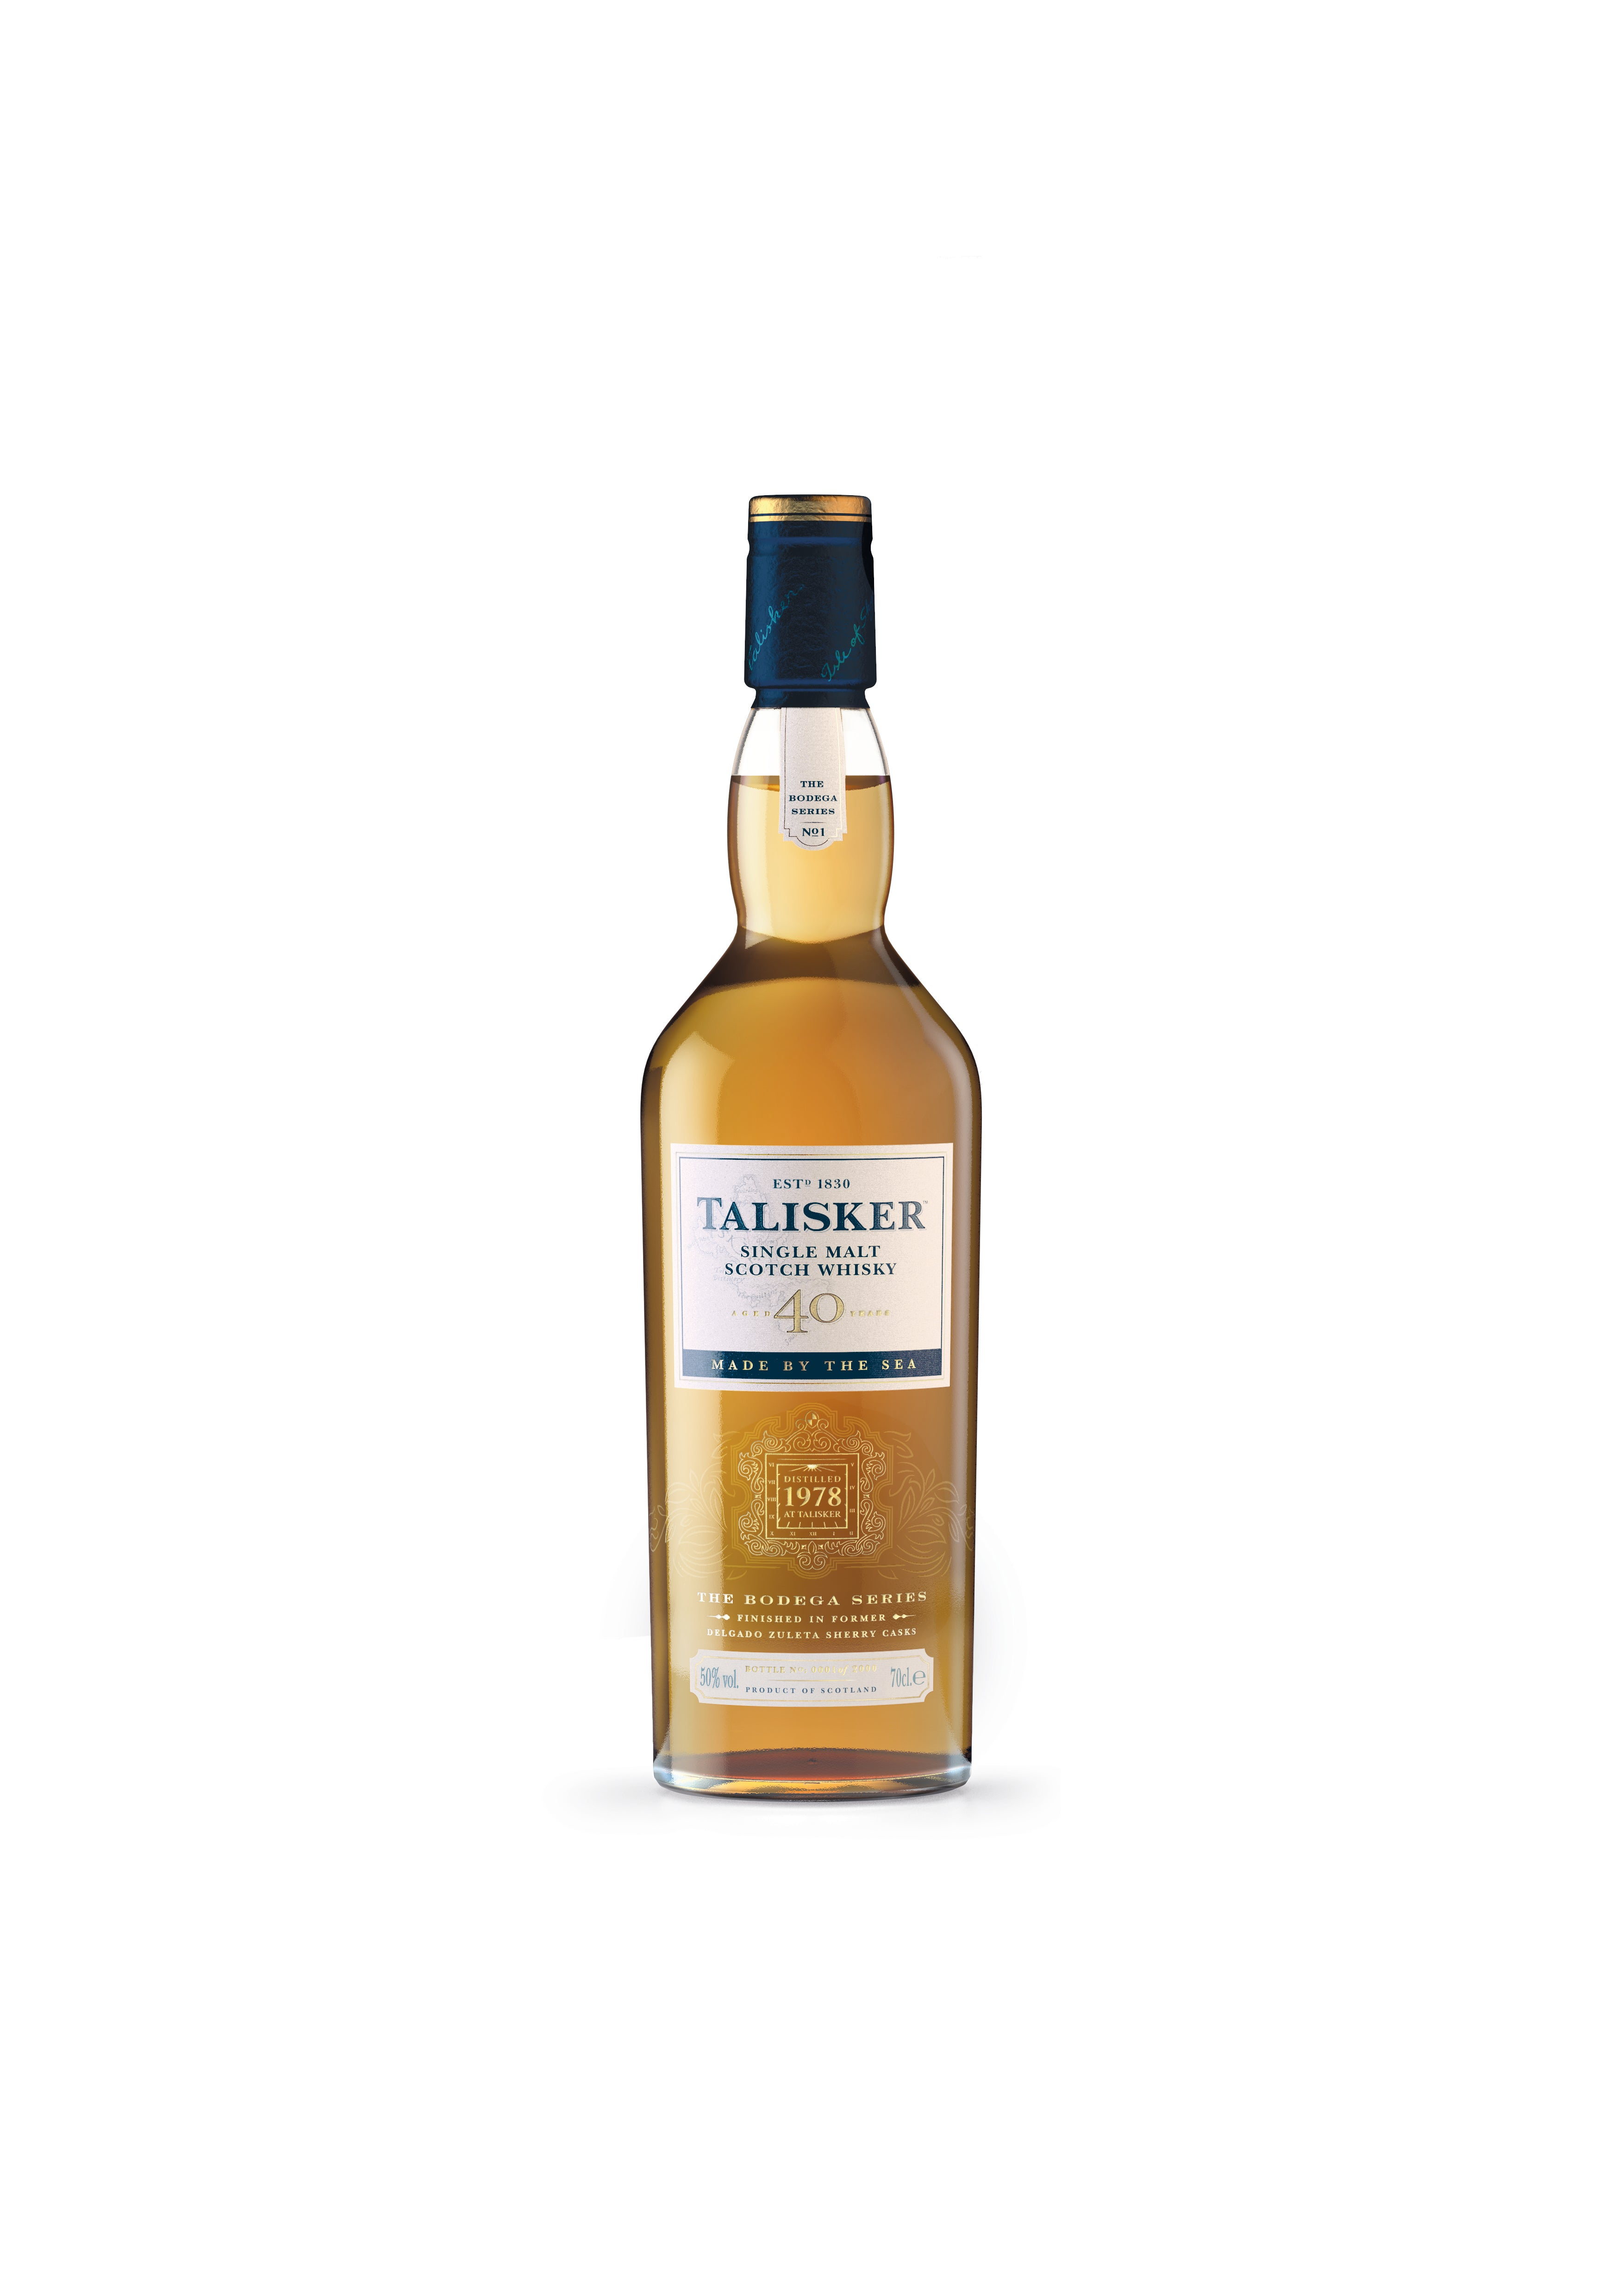 Talisker 40 Year Old